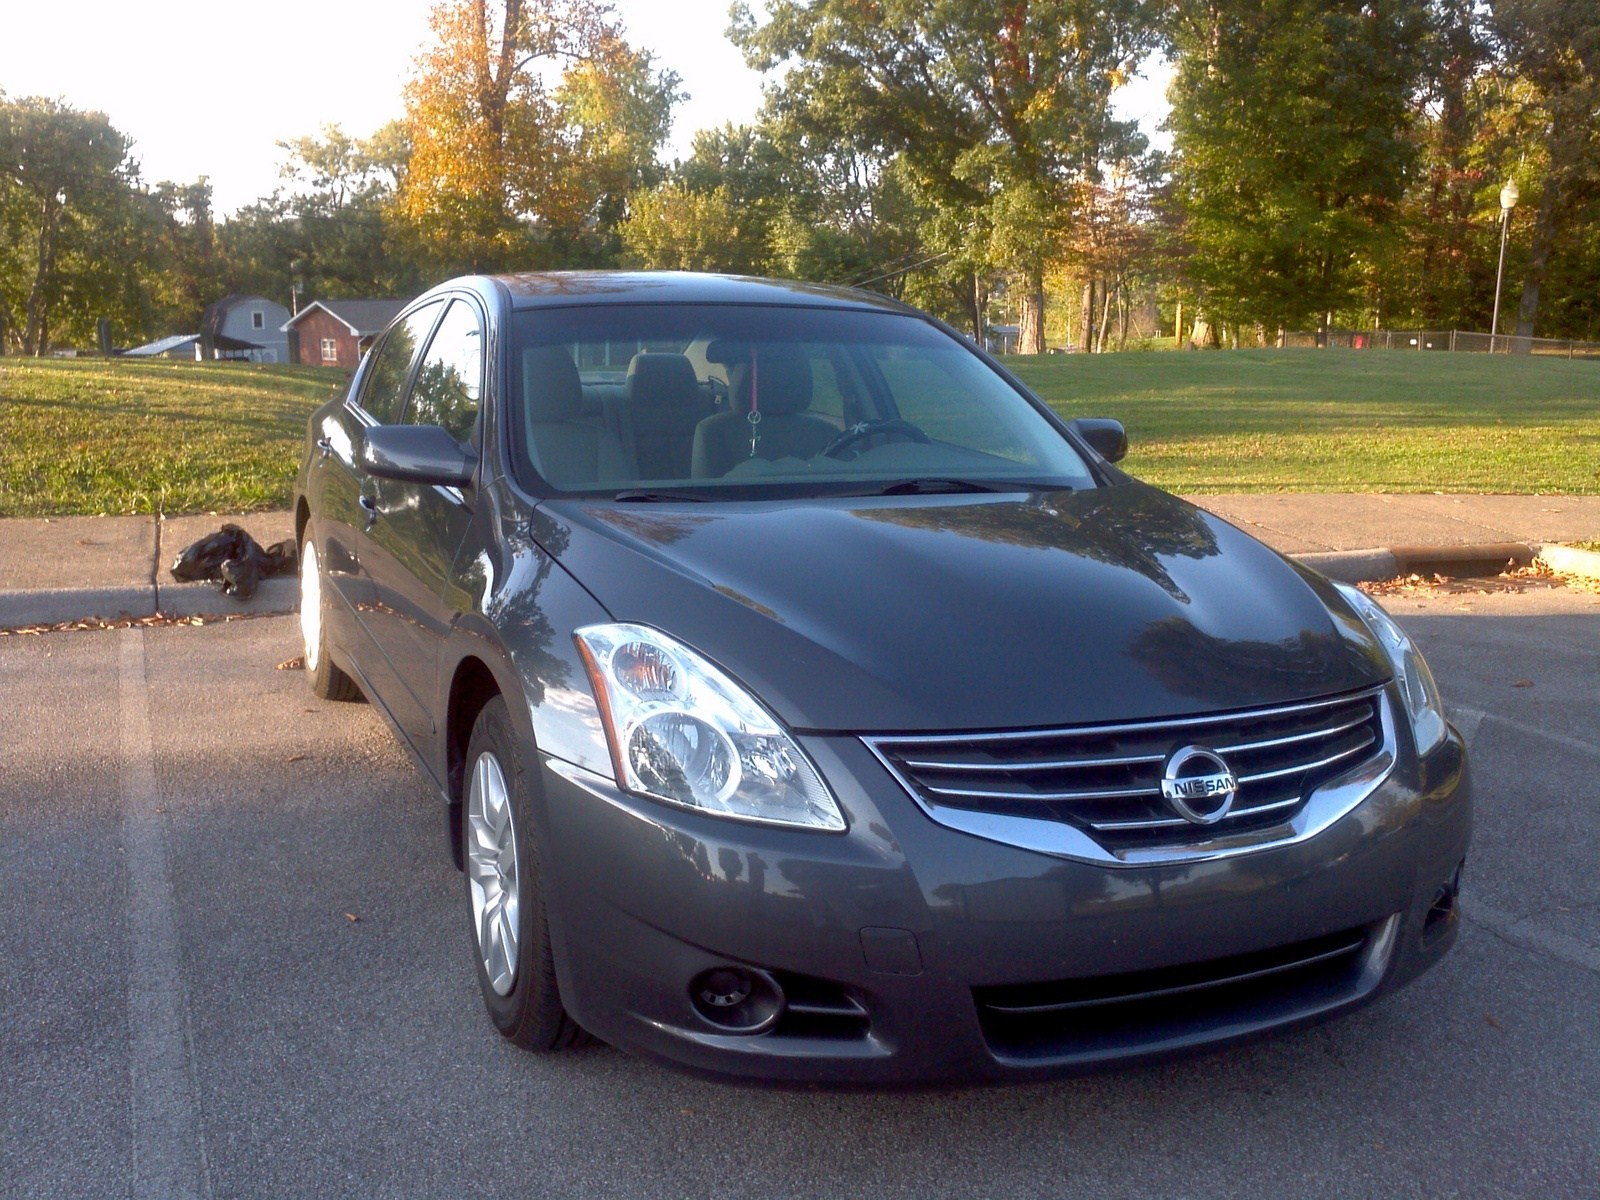 nissan altima 2 5 s car review car wallpaper prices specification. Black Bedroom Furniture Sets. Home Design Ideas